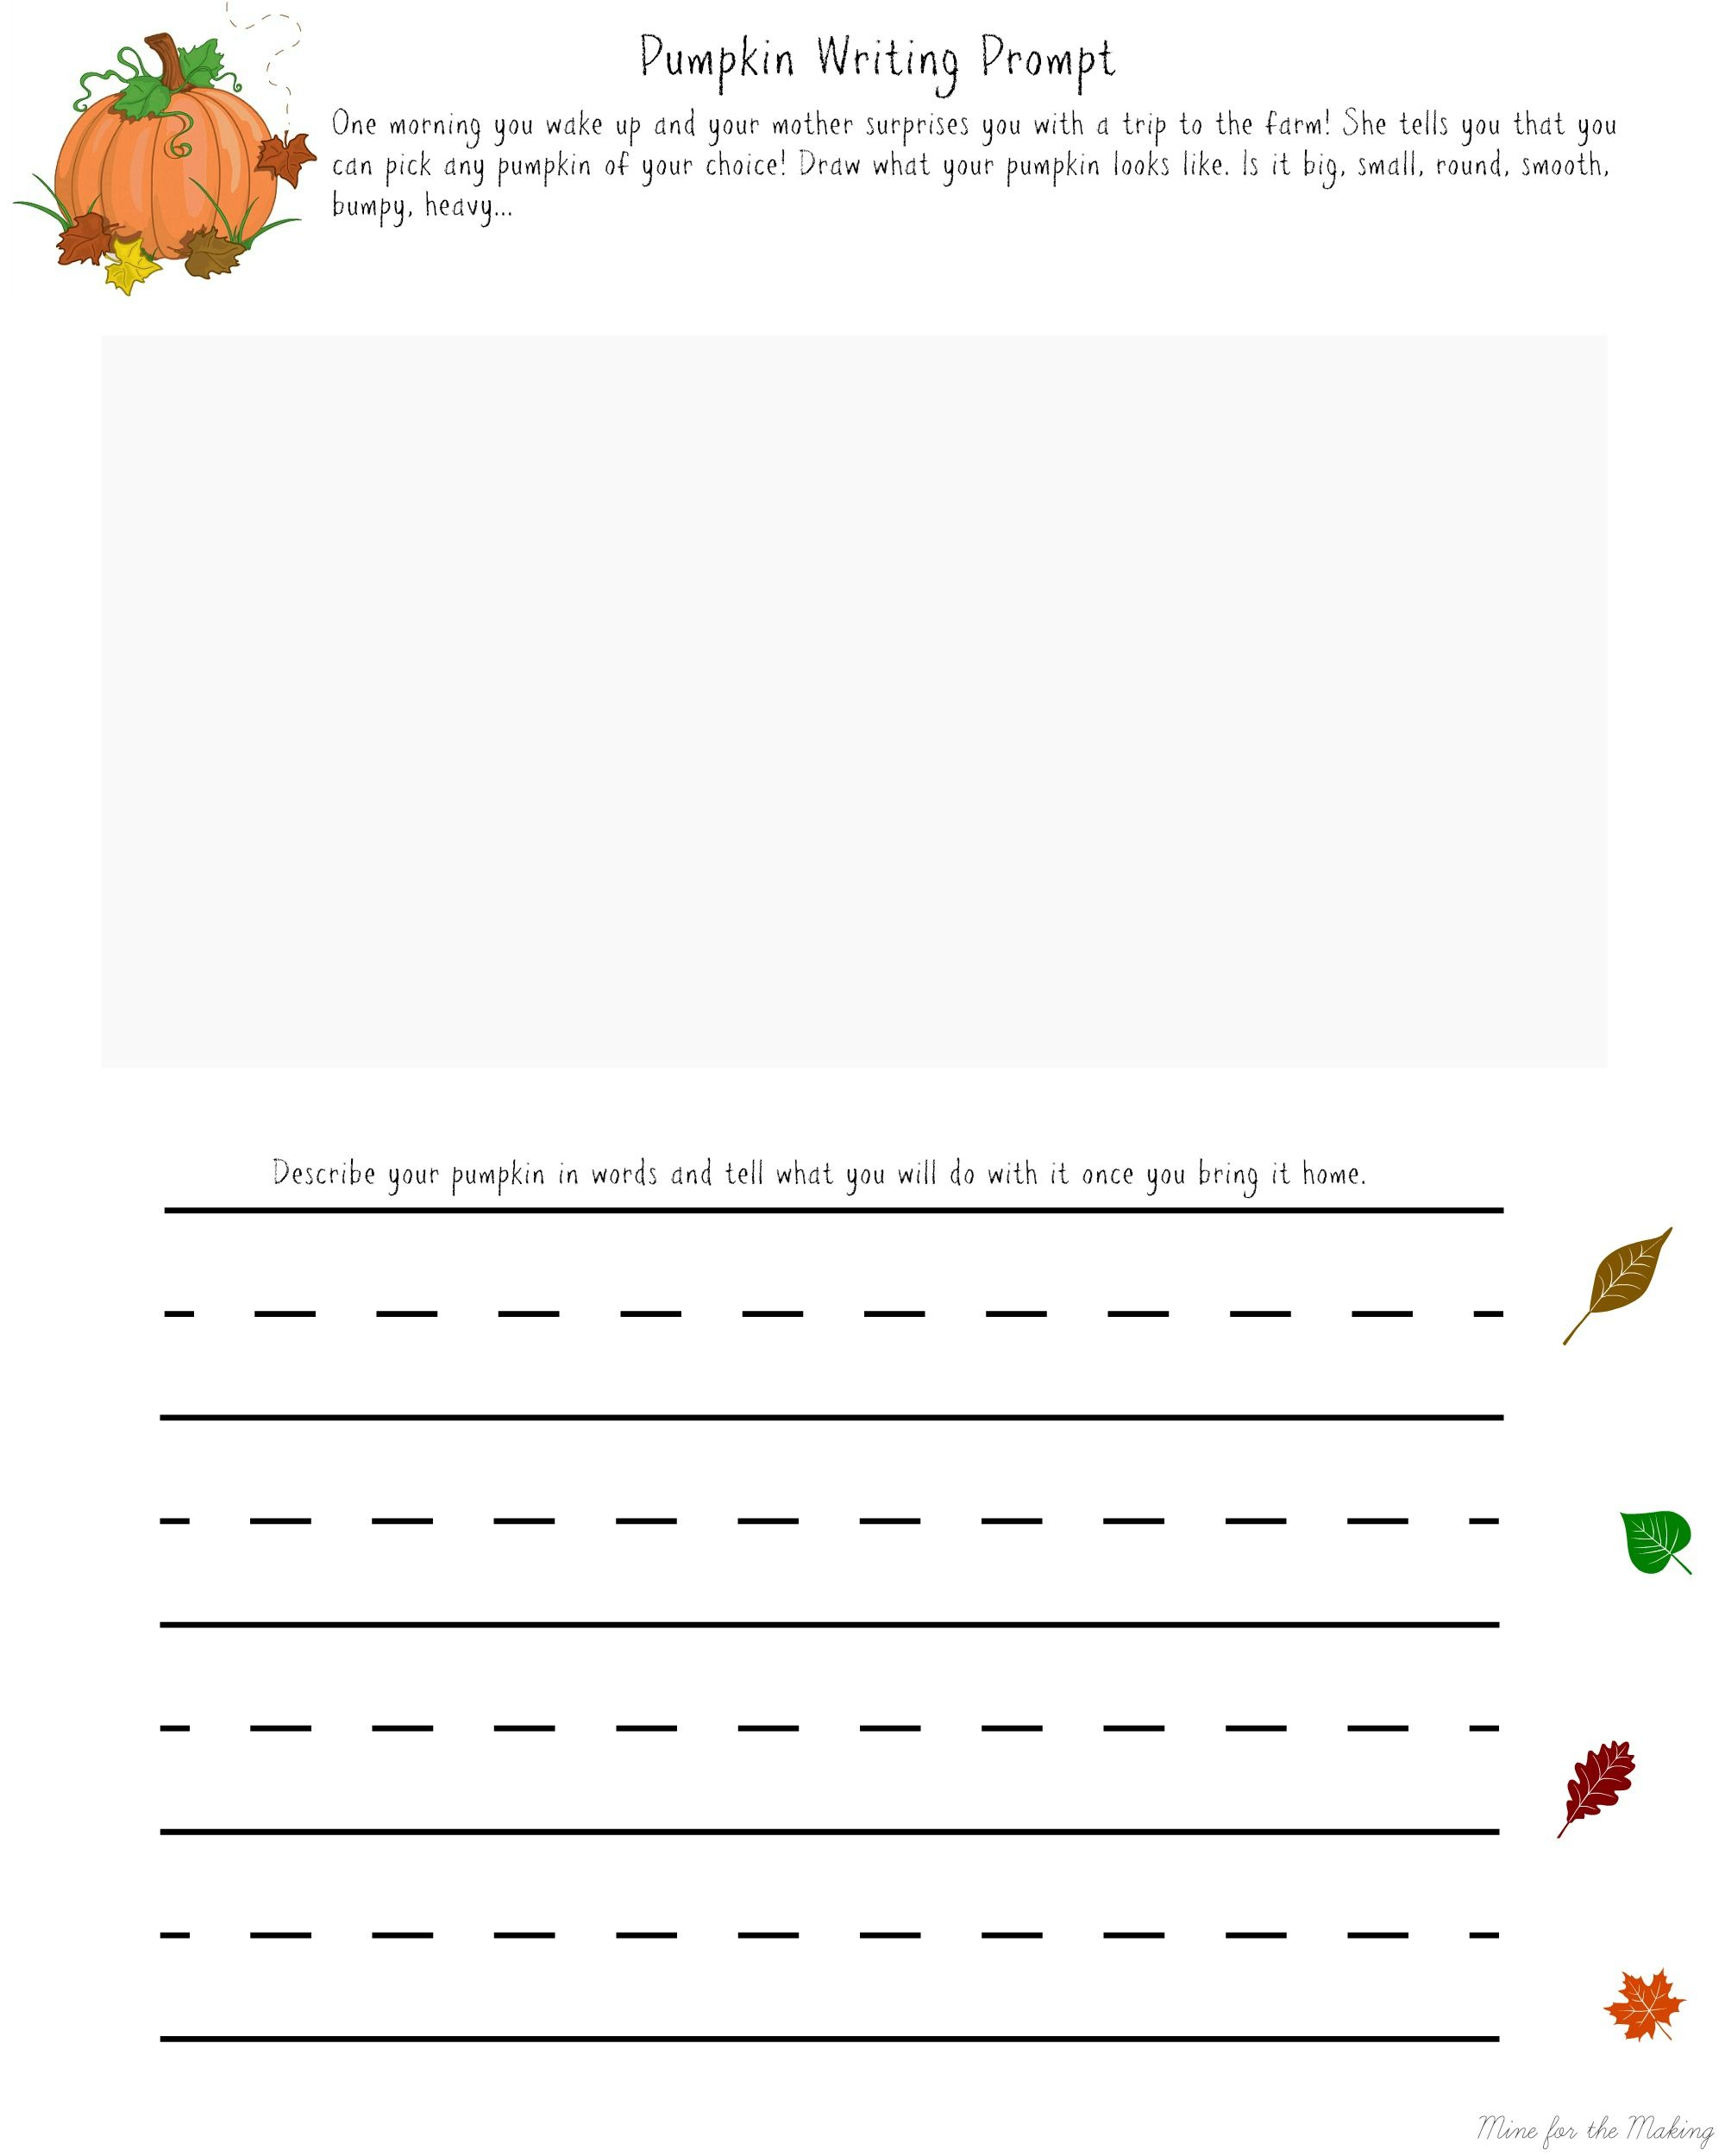 Pumpkin Writing Prompt 2 000 2 500 Pixels